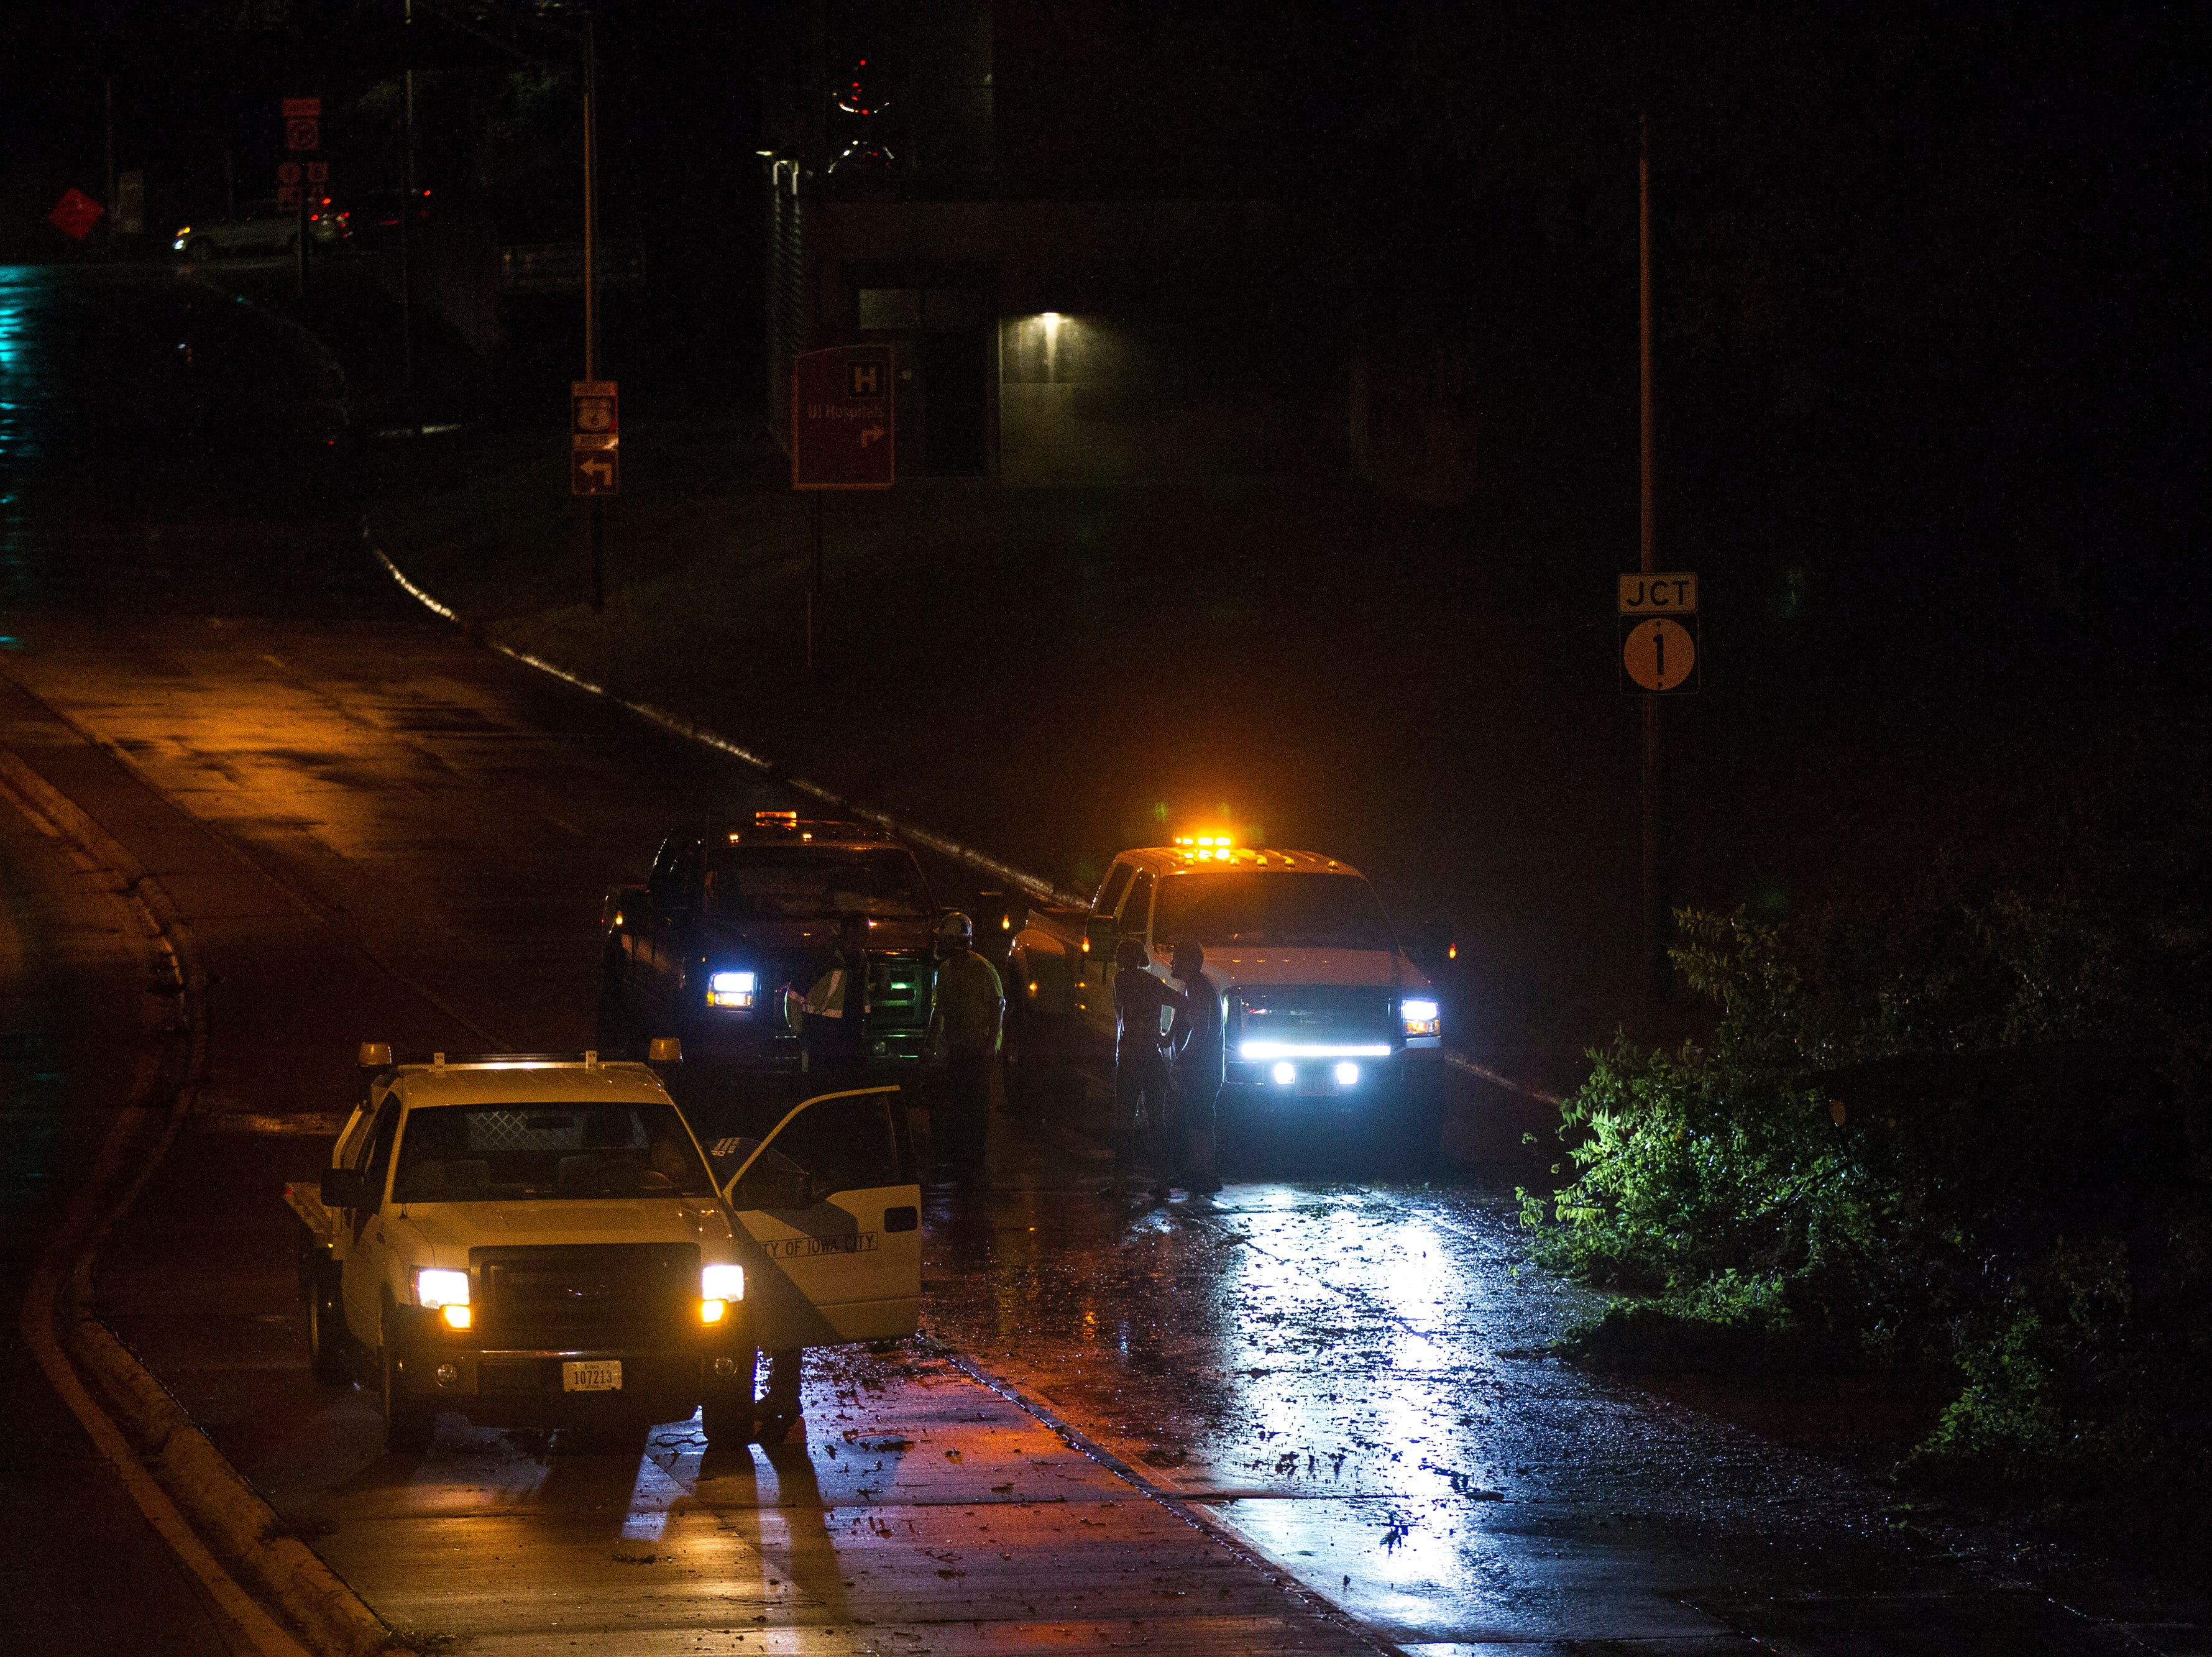 Responders move a tree out of the road during a rain storm on Tuesday, Aug. 28, 2018, on Riverside Drive in Iowa City.